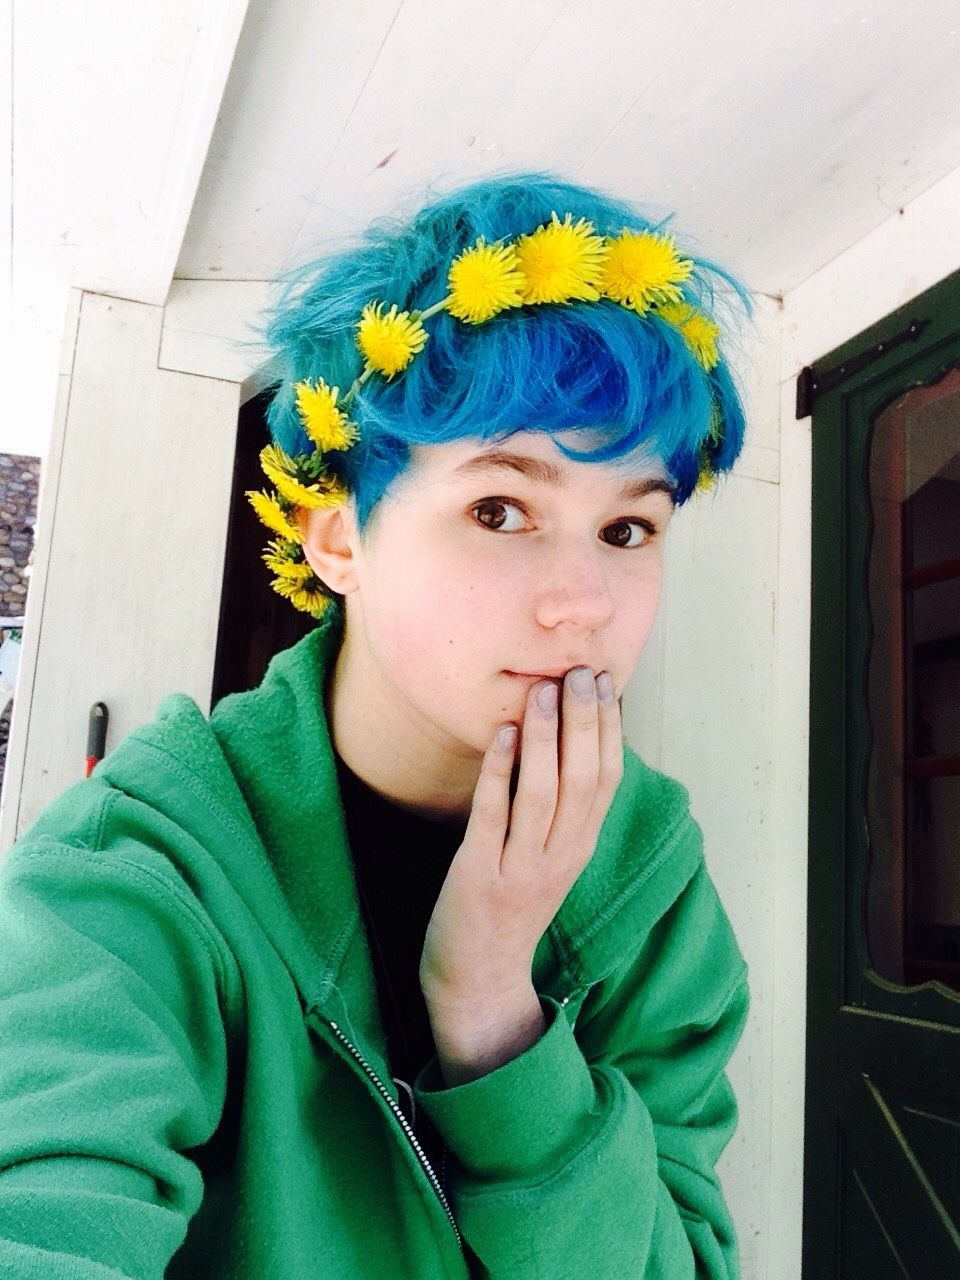 Blue hair tumblr hair pinterest blue hair people and